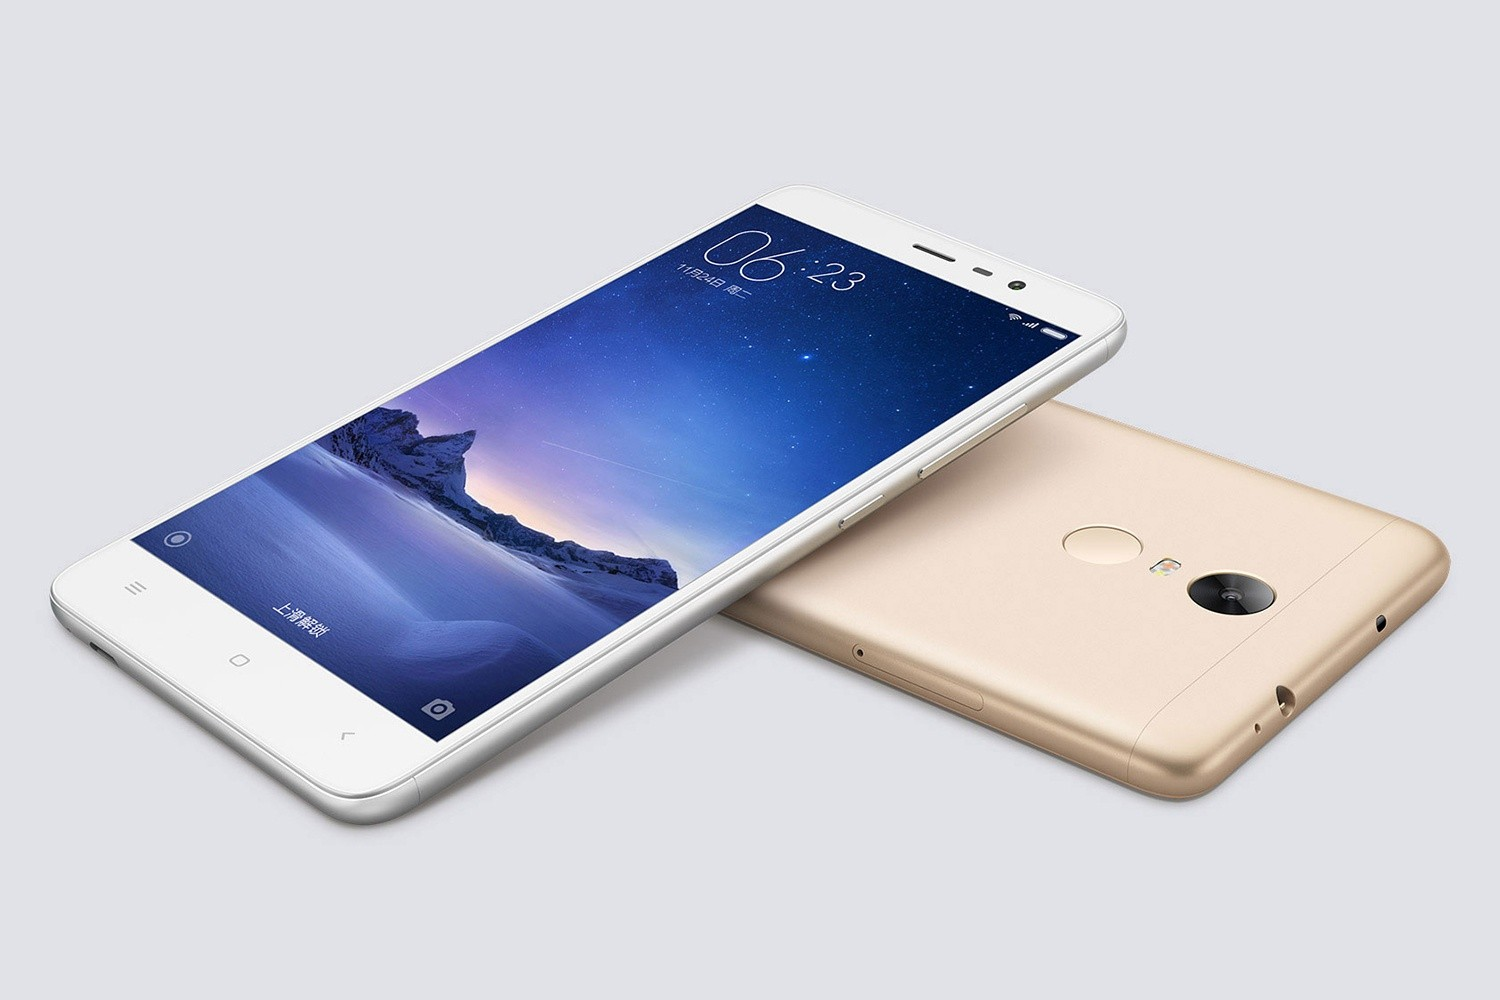 Xiaomi Redmi 4 spotted on Chinese Certification site Tenaa